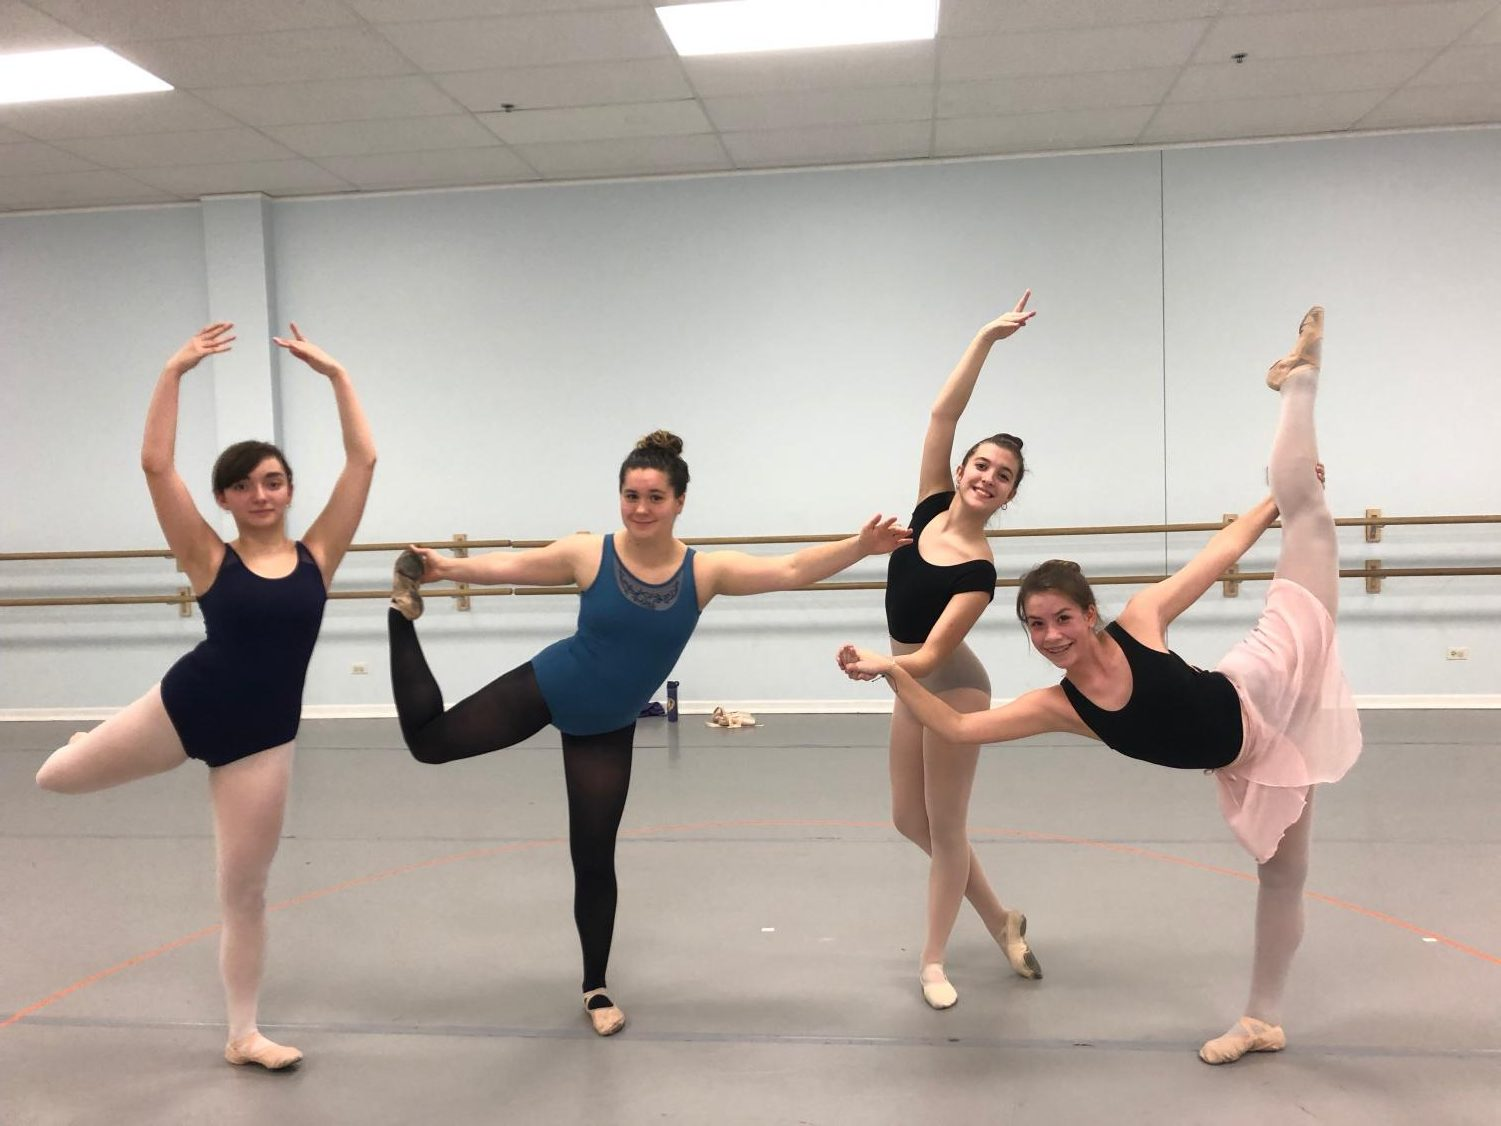 Sarah attempting to do ballet with dancers in the class.